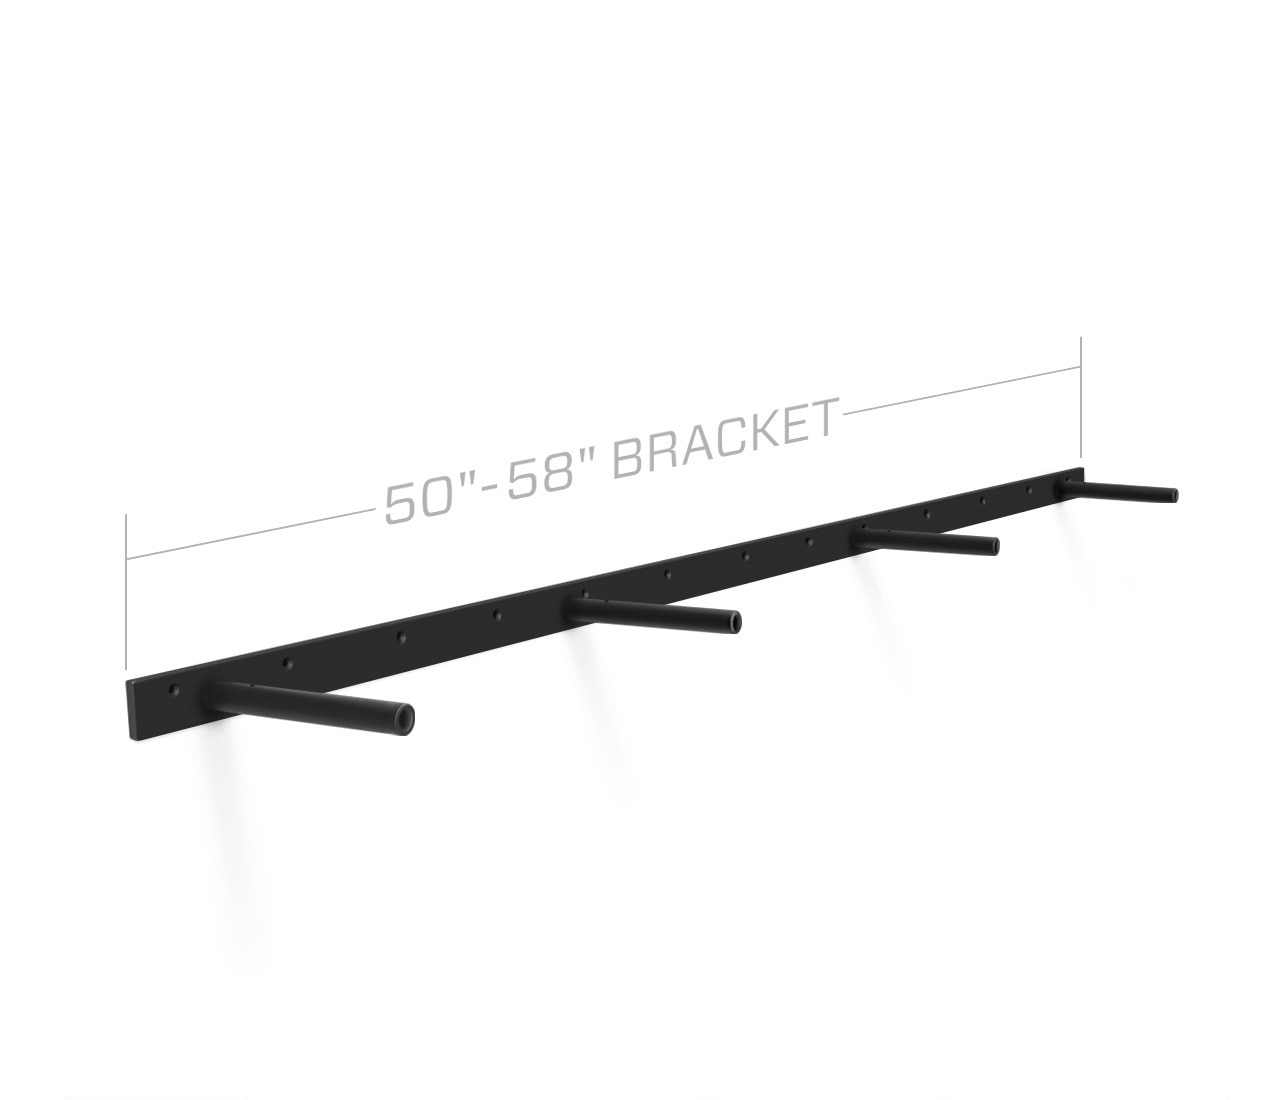 floating shelf bracket fits inch shelves custom brackets our heavy duty bar comes lengths and unfinished wood mantel brushed nickel towel rack with storage shelving system wrought